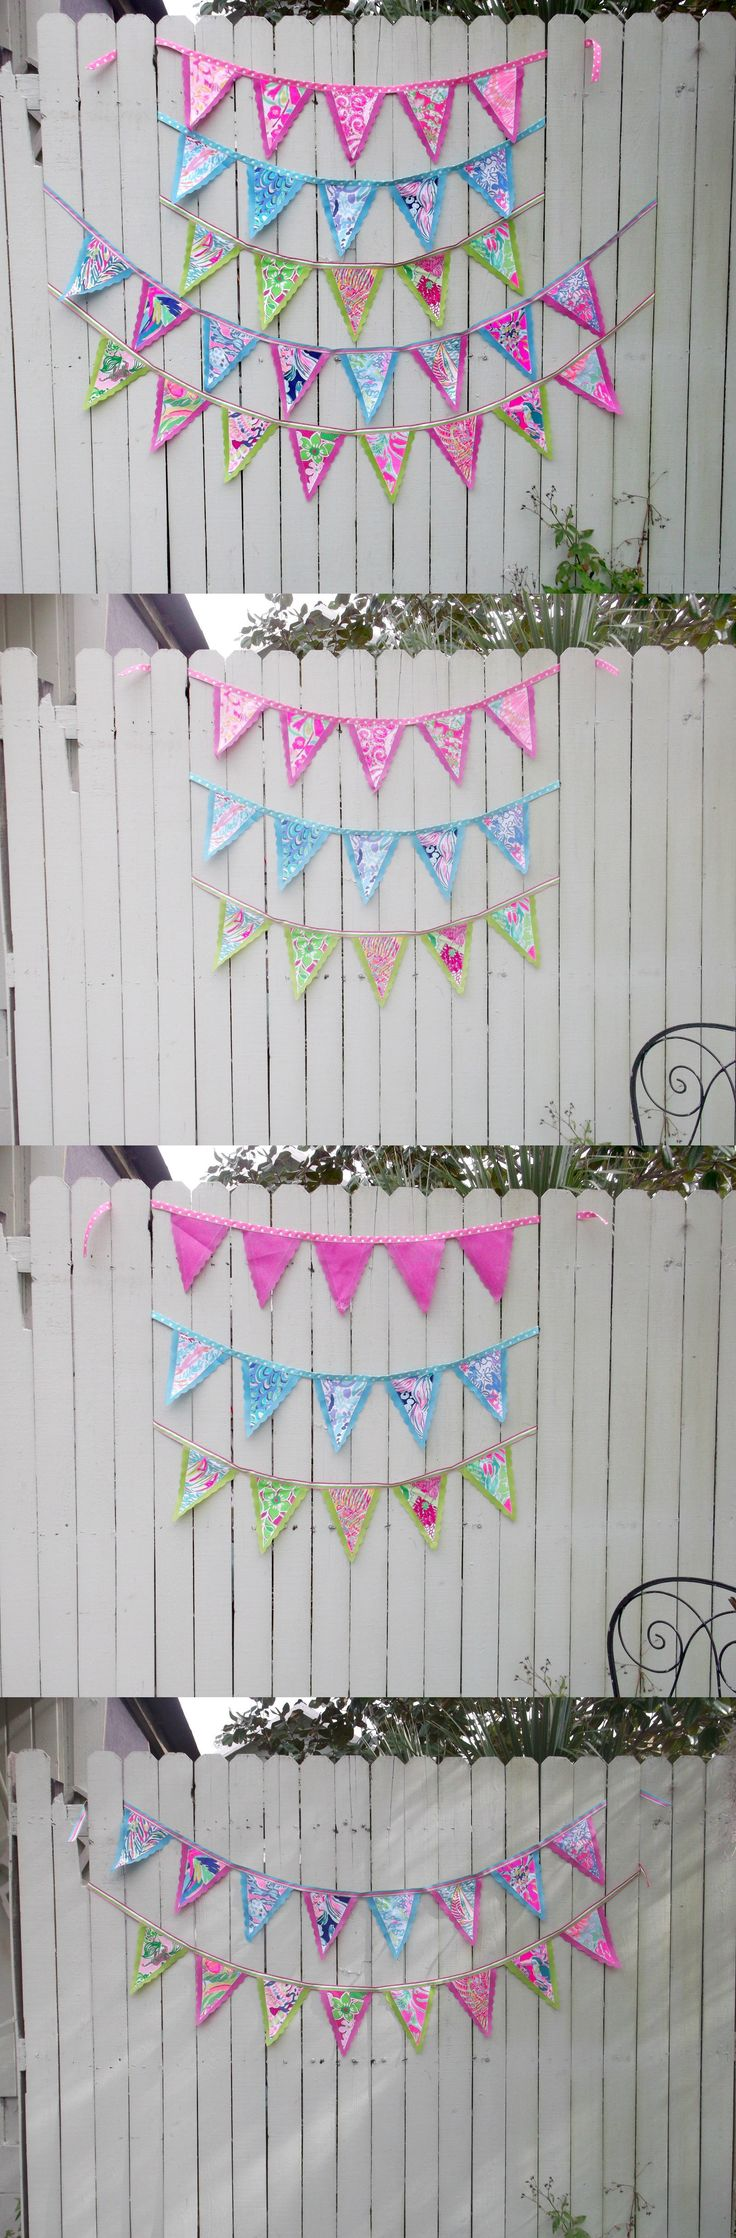 best 20 lilly pulitzer party decorations ideas on pinterest party decorations 170103 preppy handmade lilly pulitzer fabric bunting flag banner swag in 2 sizes